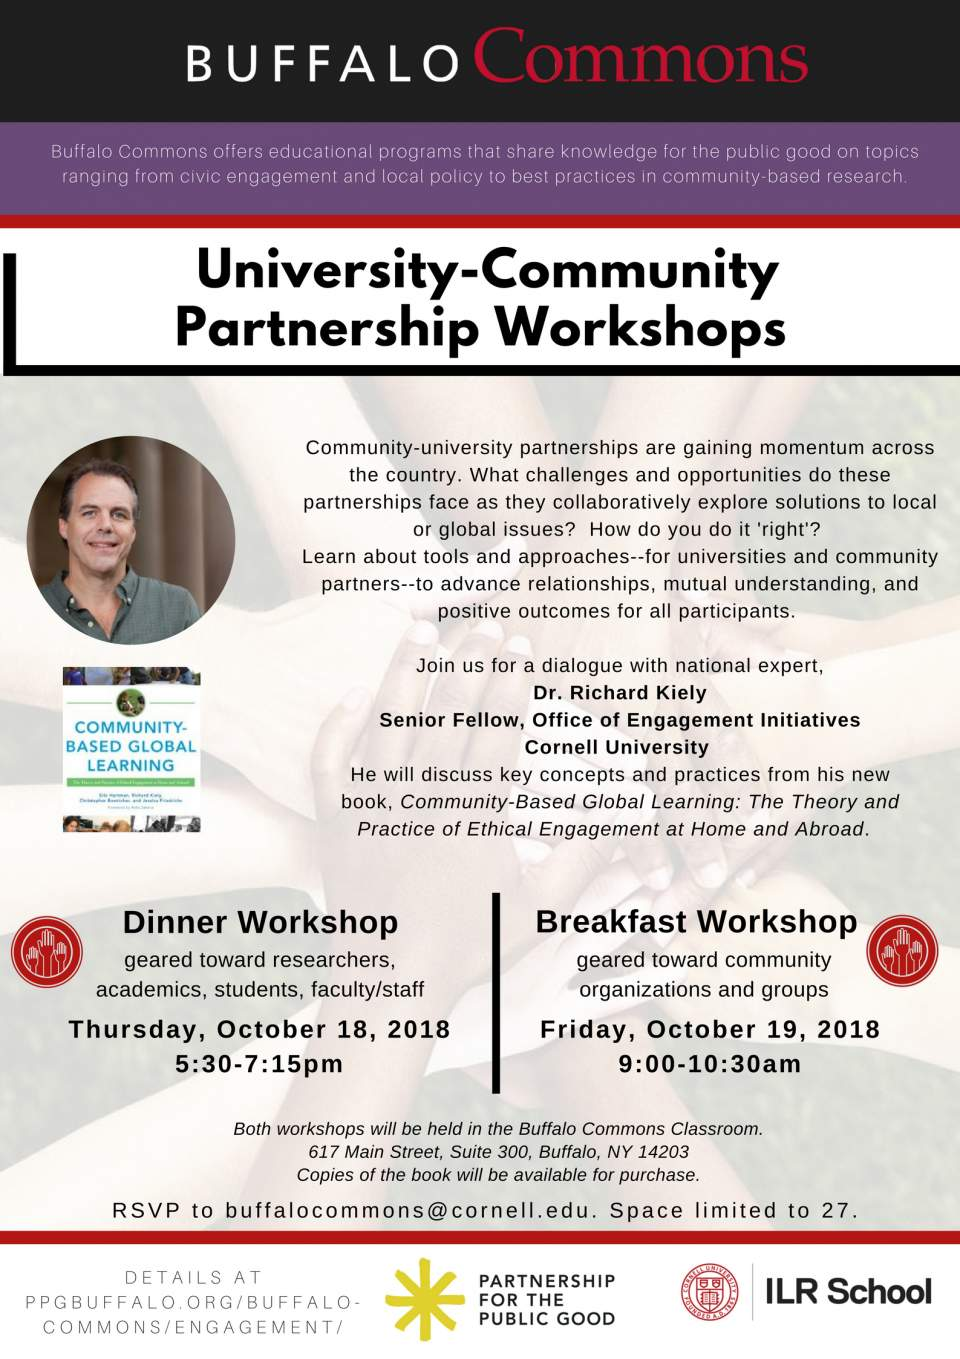 University-Community Partnership Workshop (Dinner)